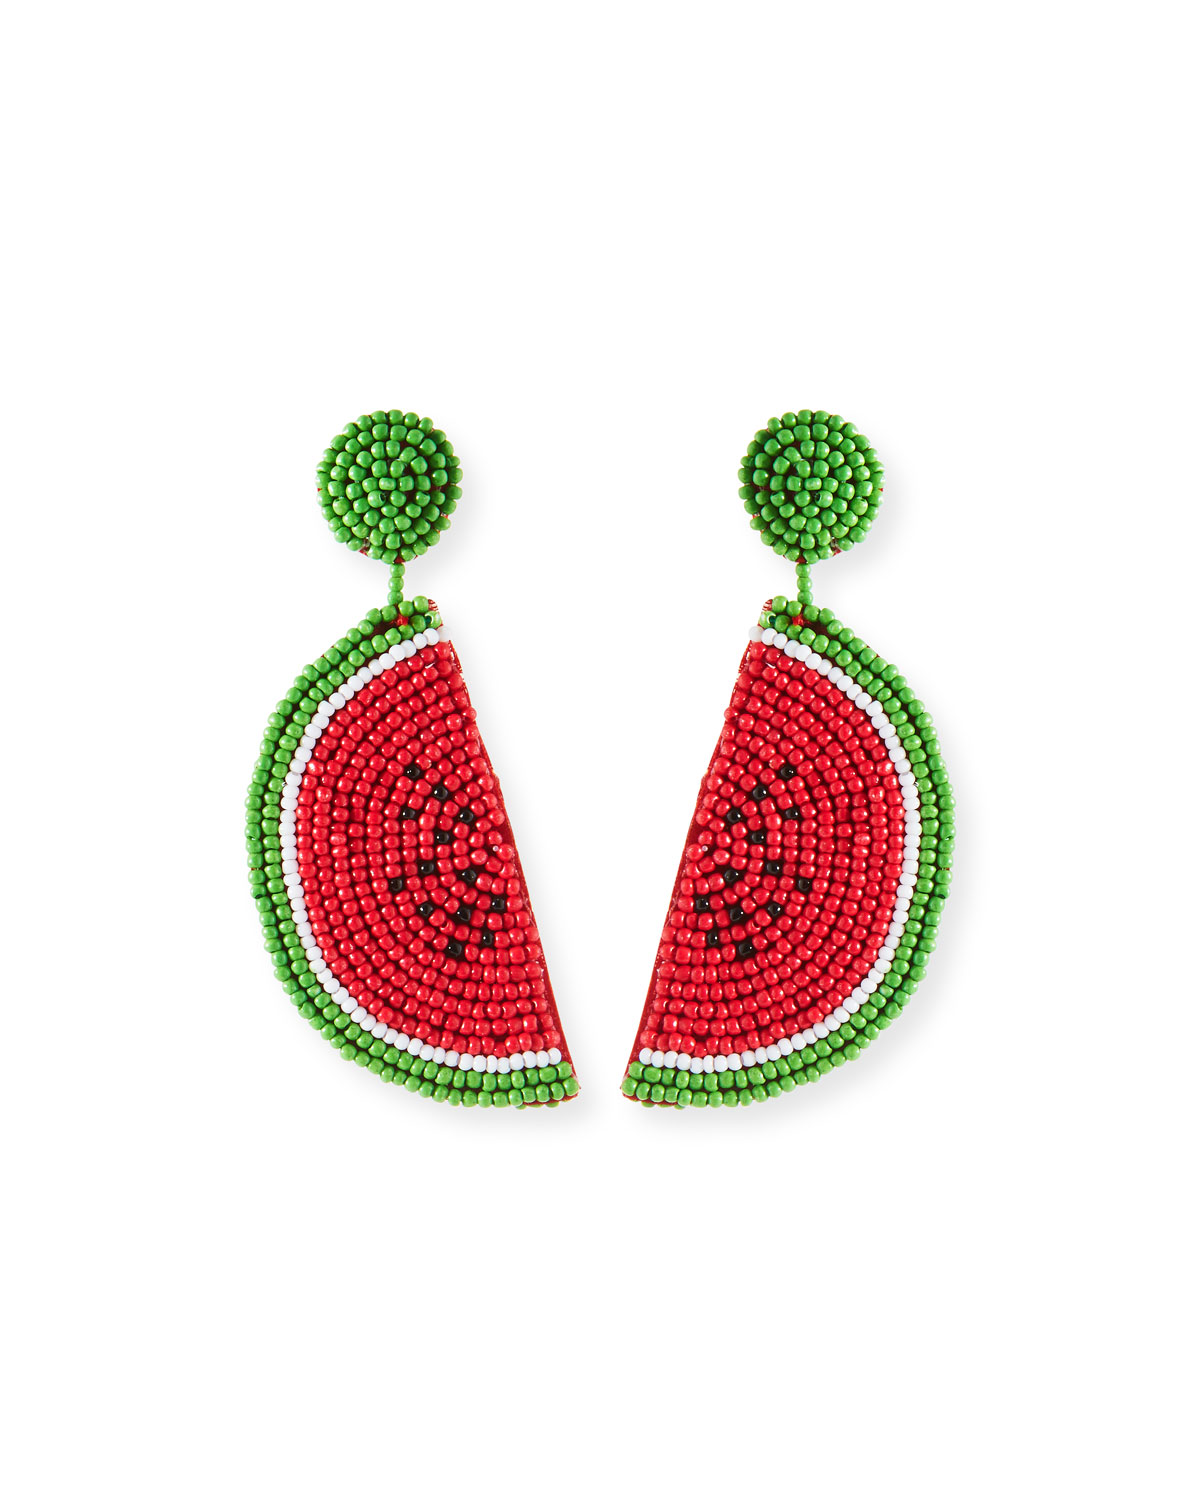 Watermelon Seed Bead Earrings